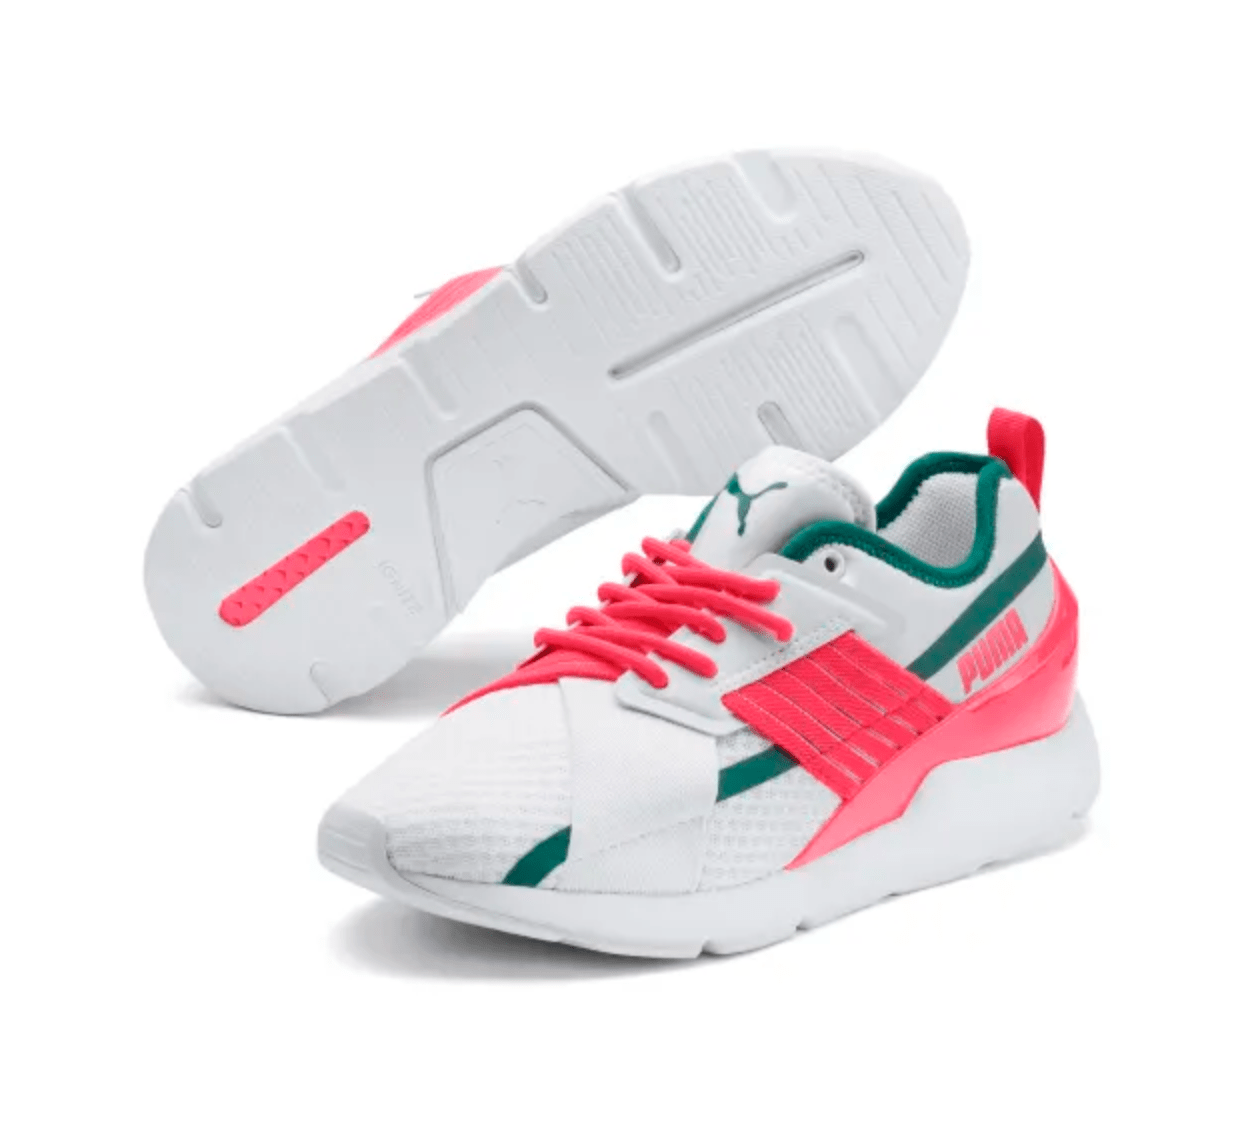 Sneaker Fever: Styles You MUST Have In Your Closet ASAP